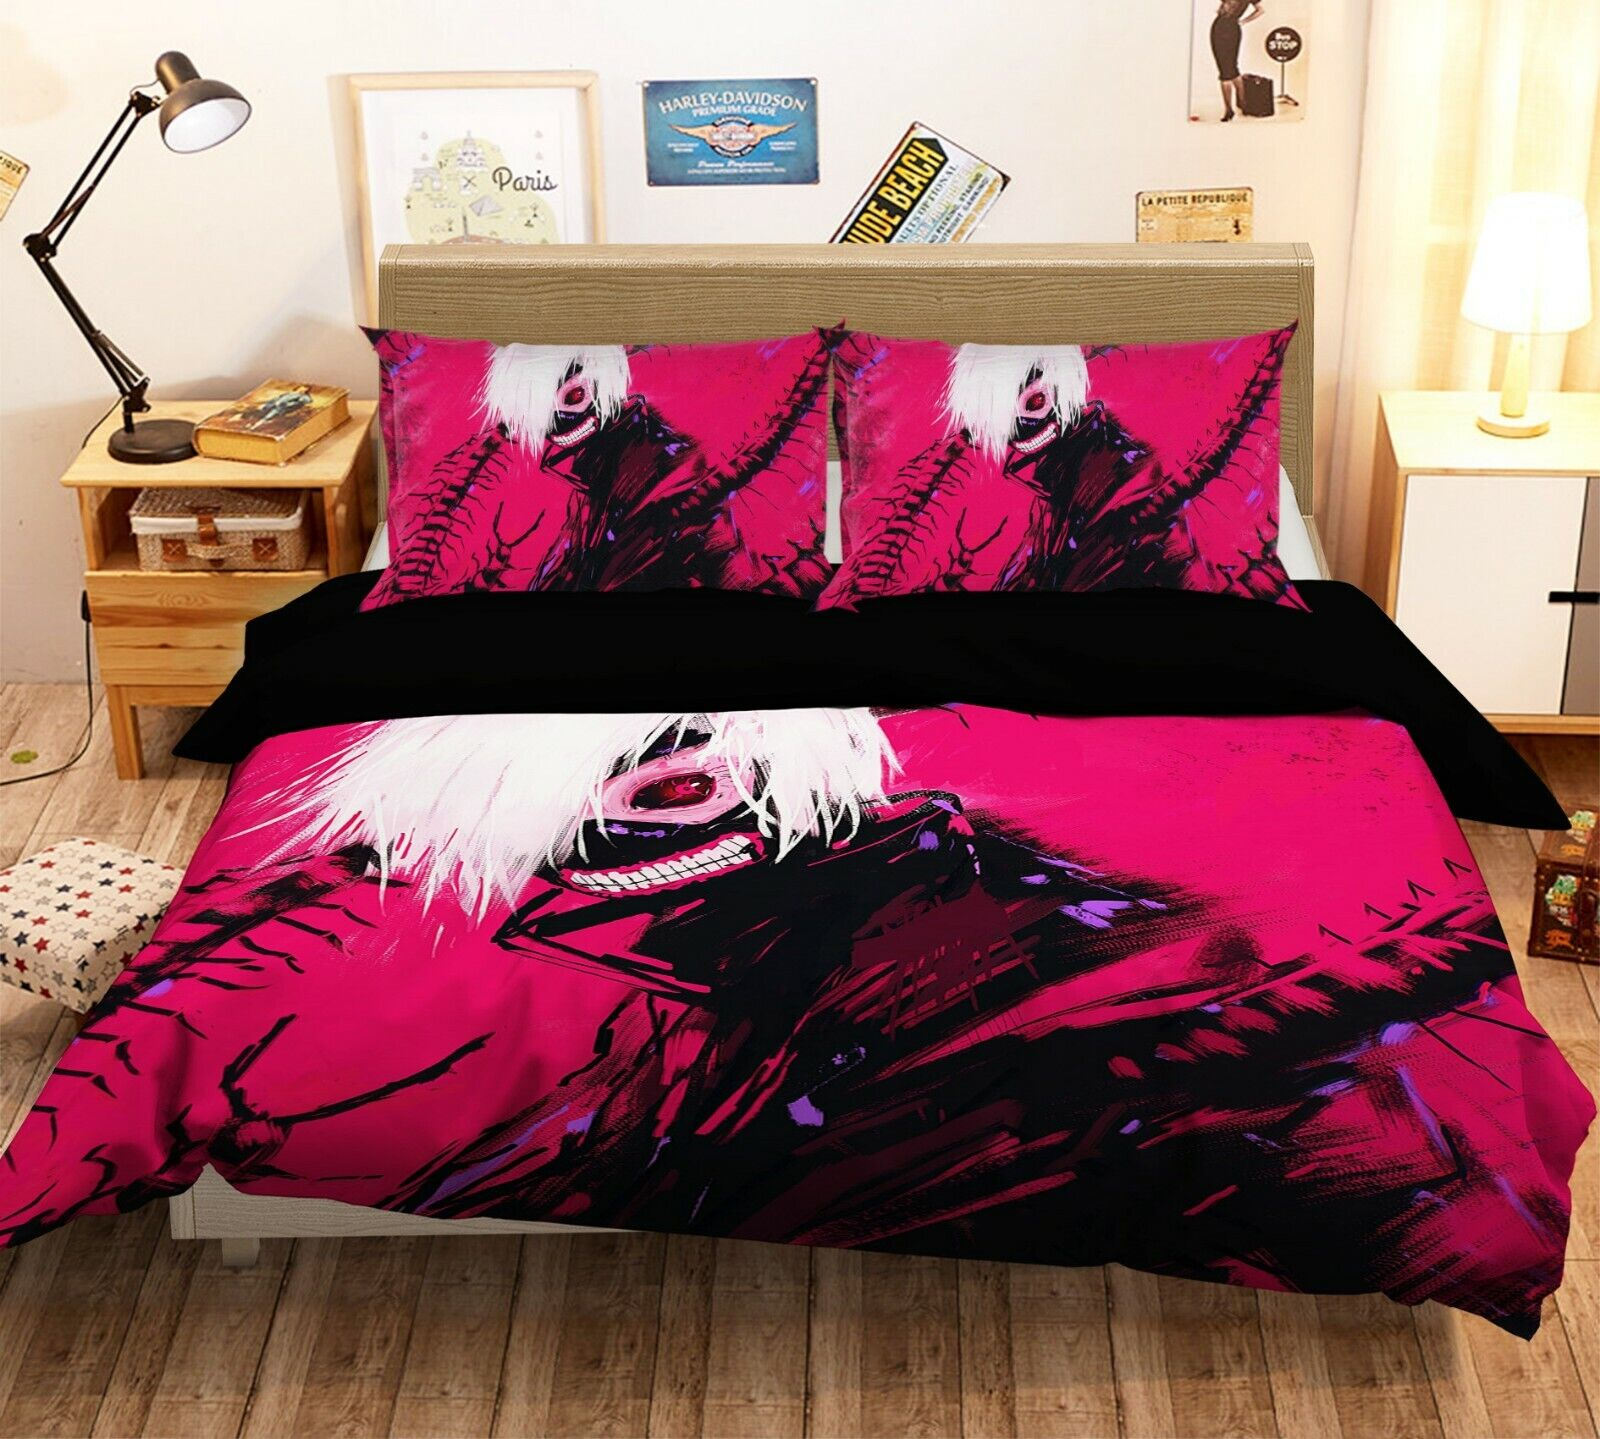 3D Tokyo Ghoul Vampir I700 Japan Anime Bed PilFaiblecases Duvet Cover Quilt Ang